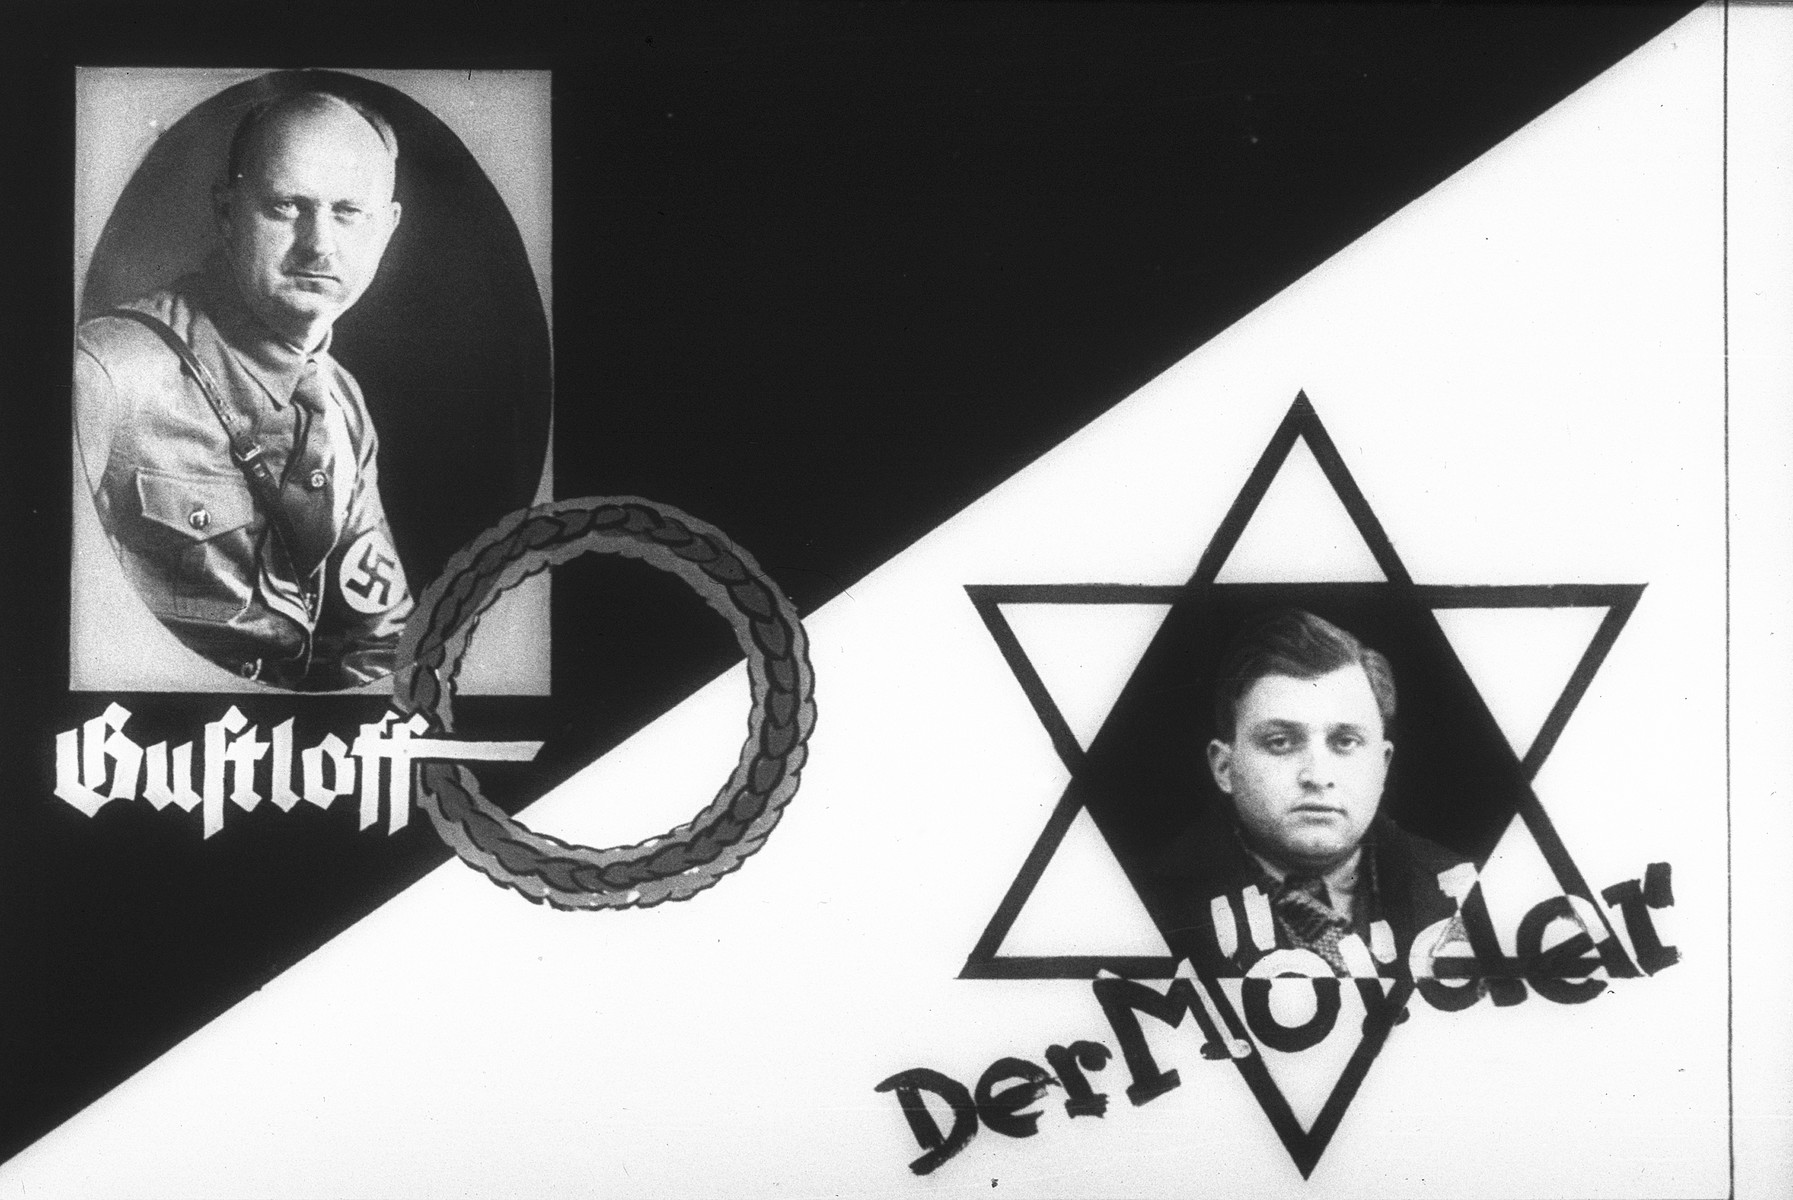 """Nazi propaganda slide featuring images of Wilhelm Gustloff, leader of the NSDAP's foreign organization in Switzerland (left), and David Frankfurter, the Jewish student who assassinated him in 1936 (right).    The image of Frankfurter is framed by a Star of David, with the words """"The Murderer"""" written beneath."""